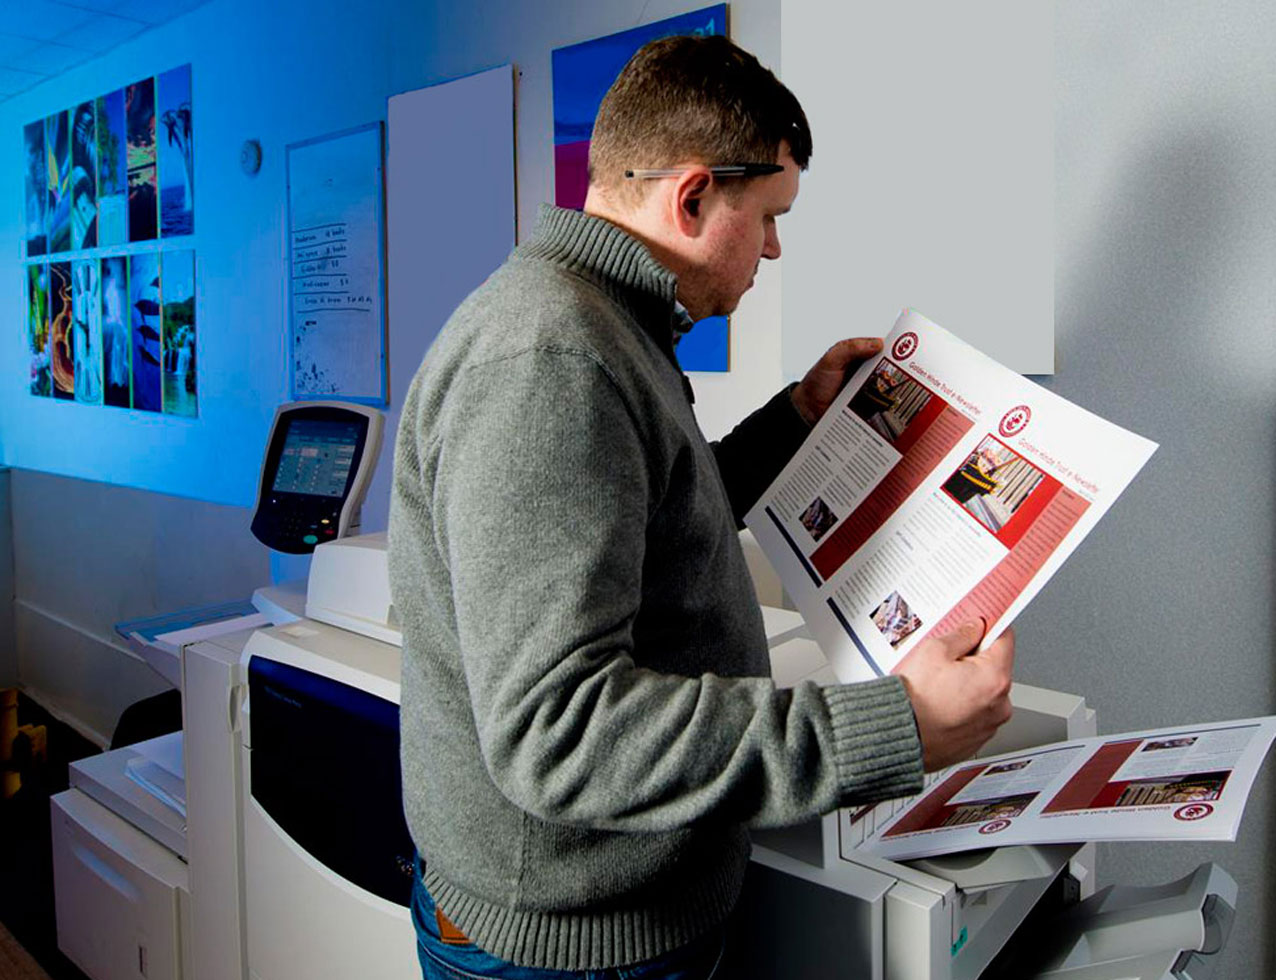 Digital print services for excellent quality, vibrant colours, affordable prices and fast turnarounds.